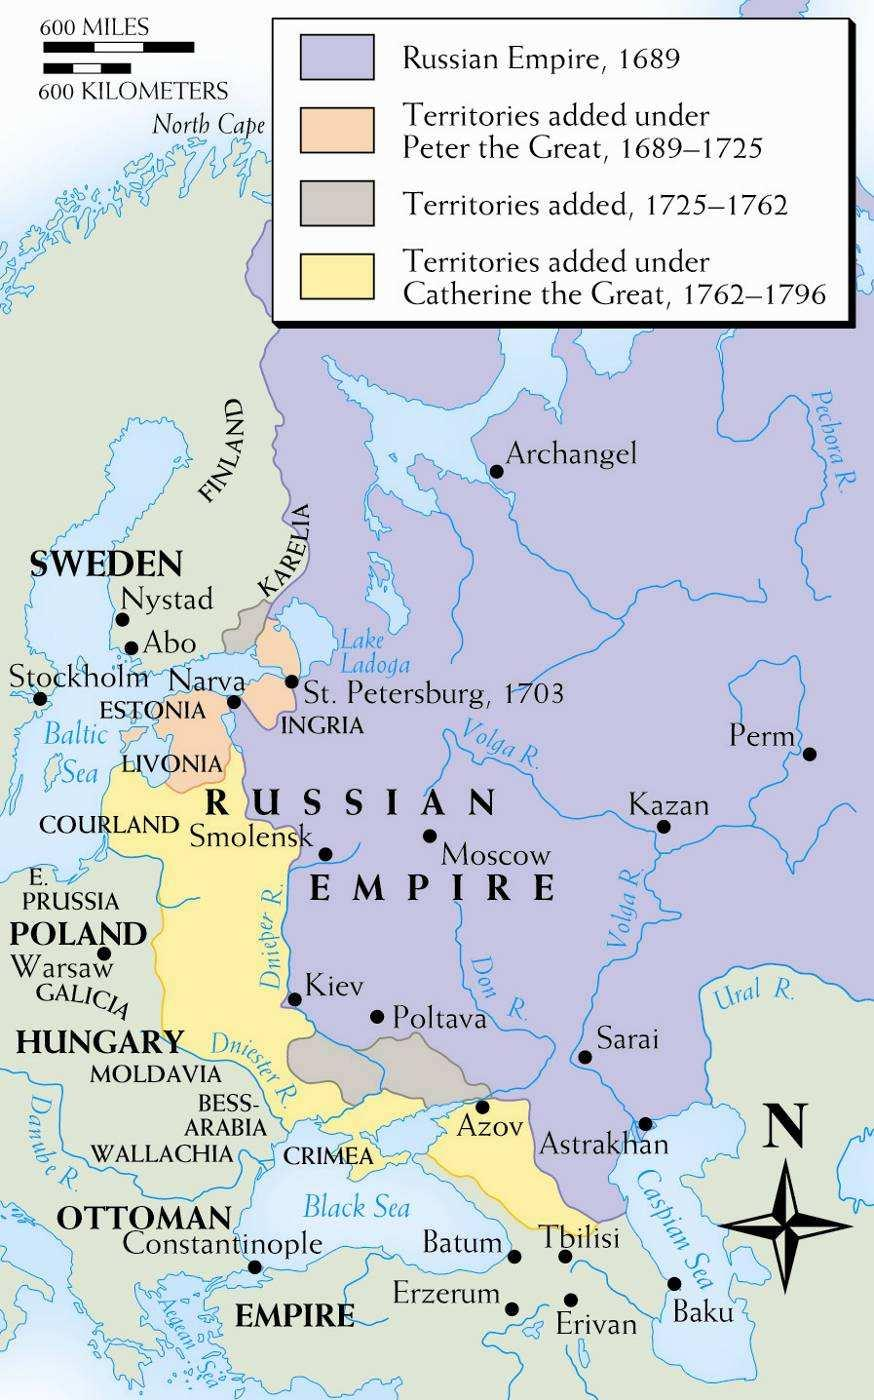 transportation and trade Abolished serfdom Land taxation Catherine the Great of Russia Limited administrative reform local control of the